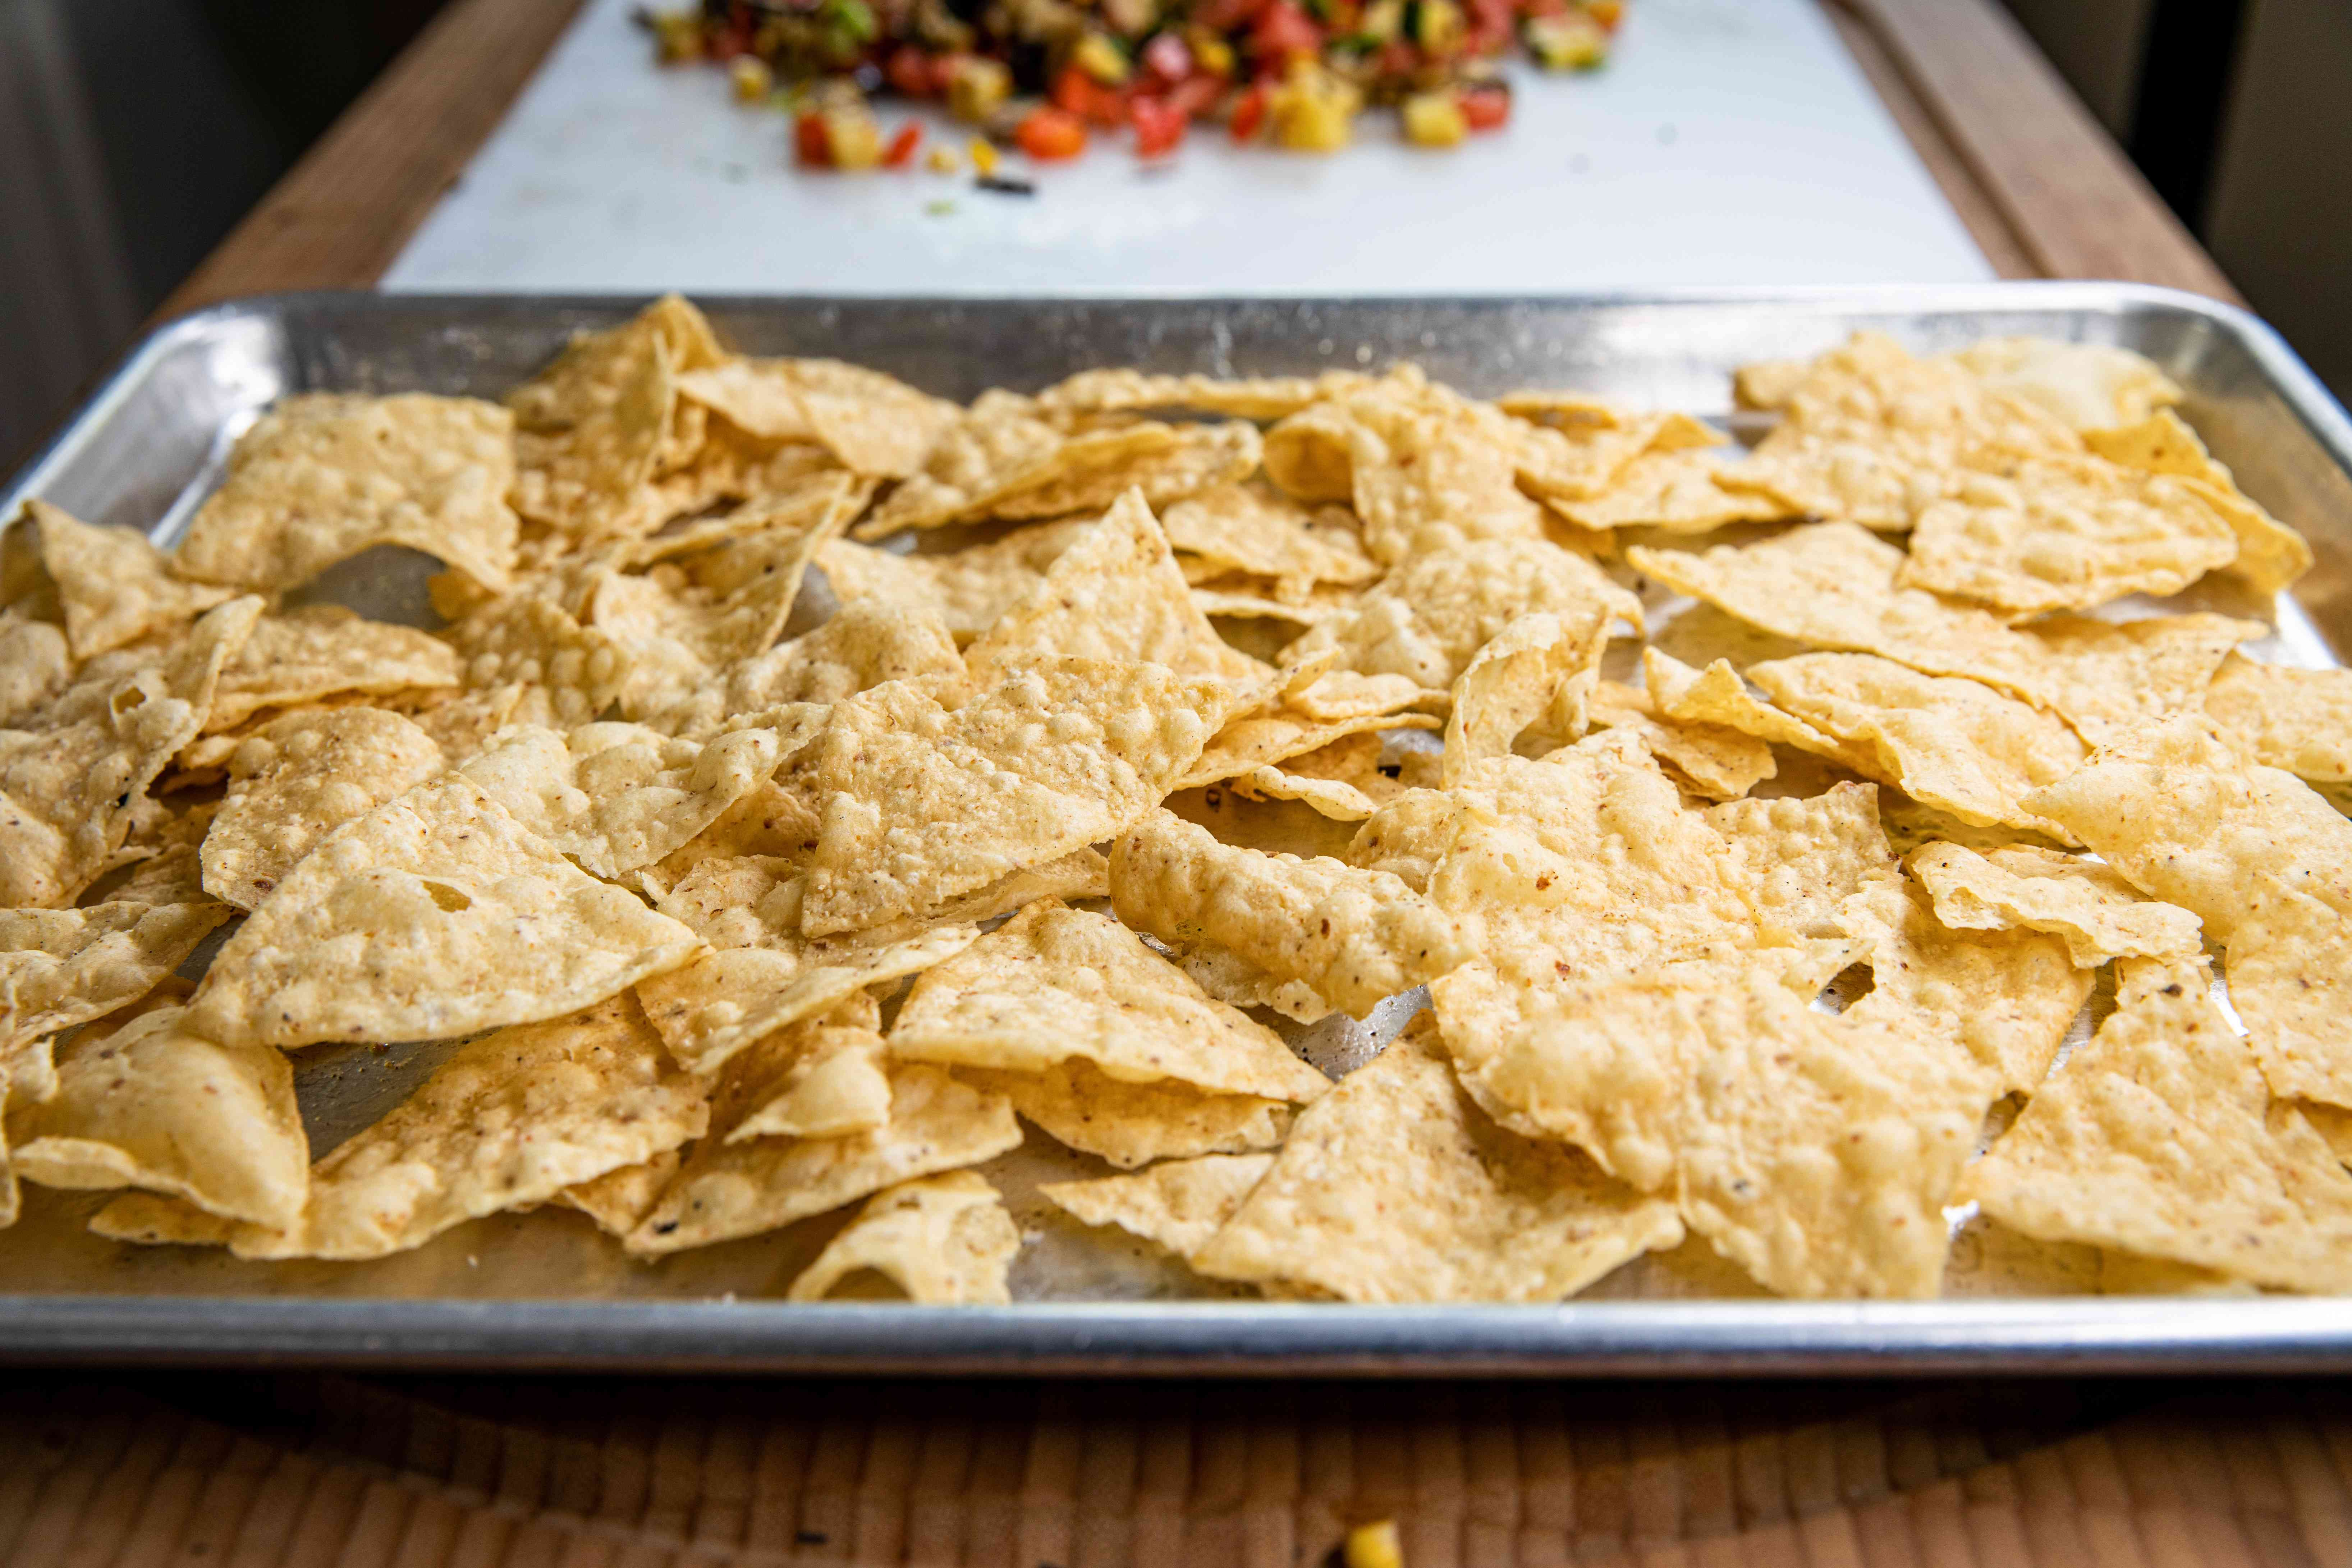 Chips on a baking sheet to make grilled vegetable nachos.